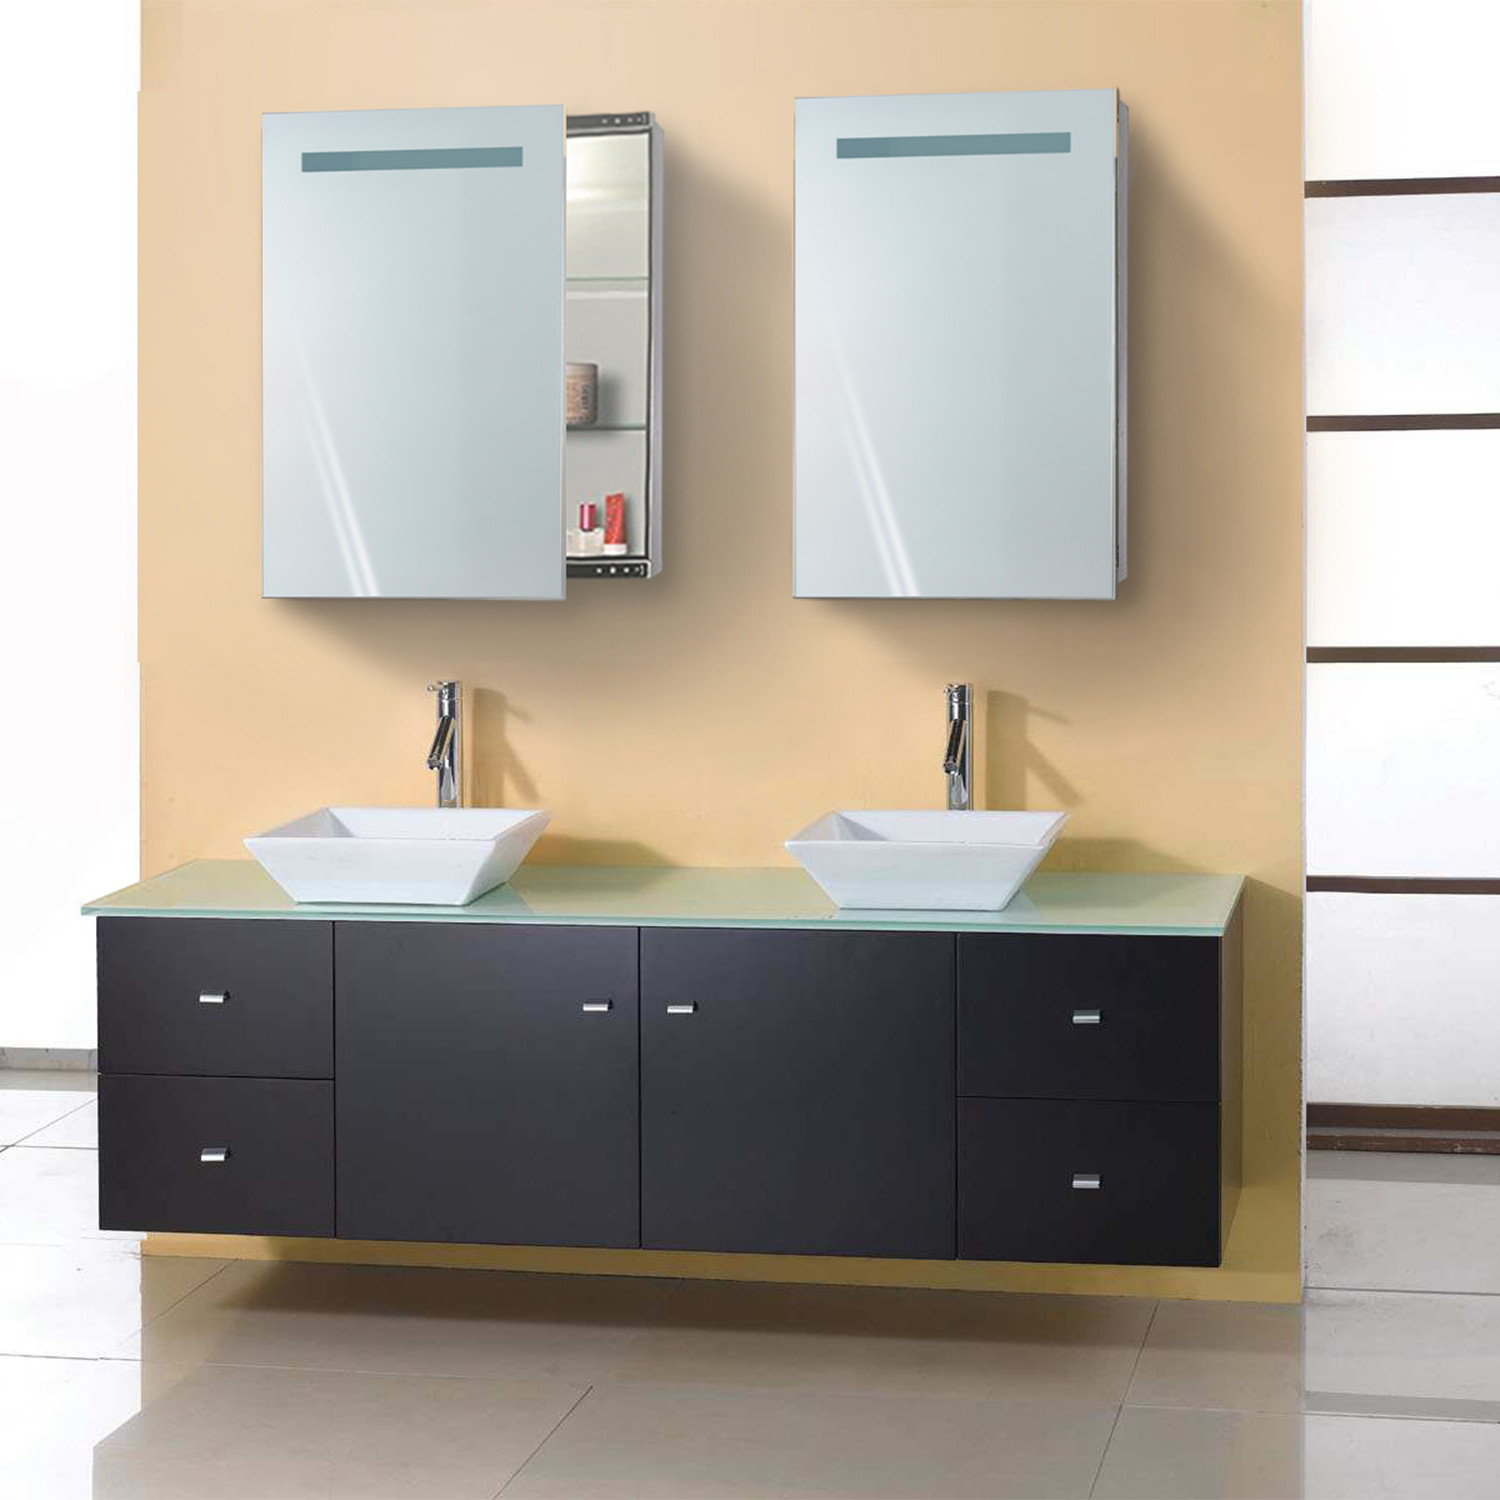 Led Medicine Cabinet Sliding Mirror Outlet Shelves Krugg Reflections Touch Of Modern